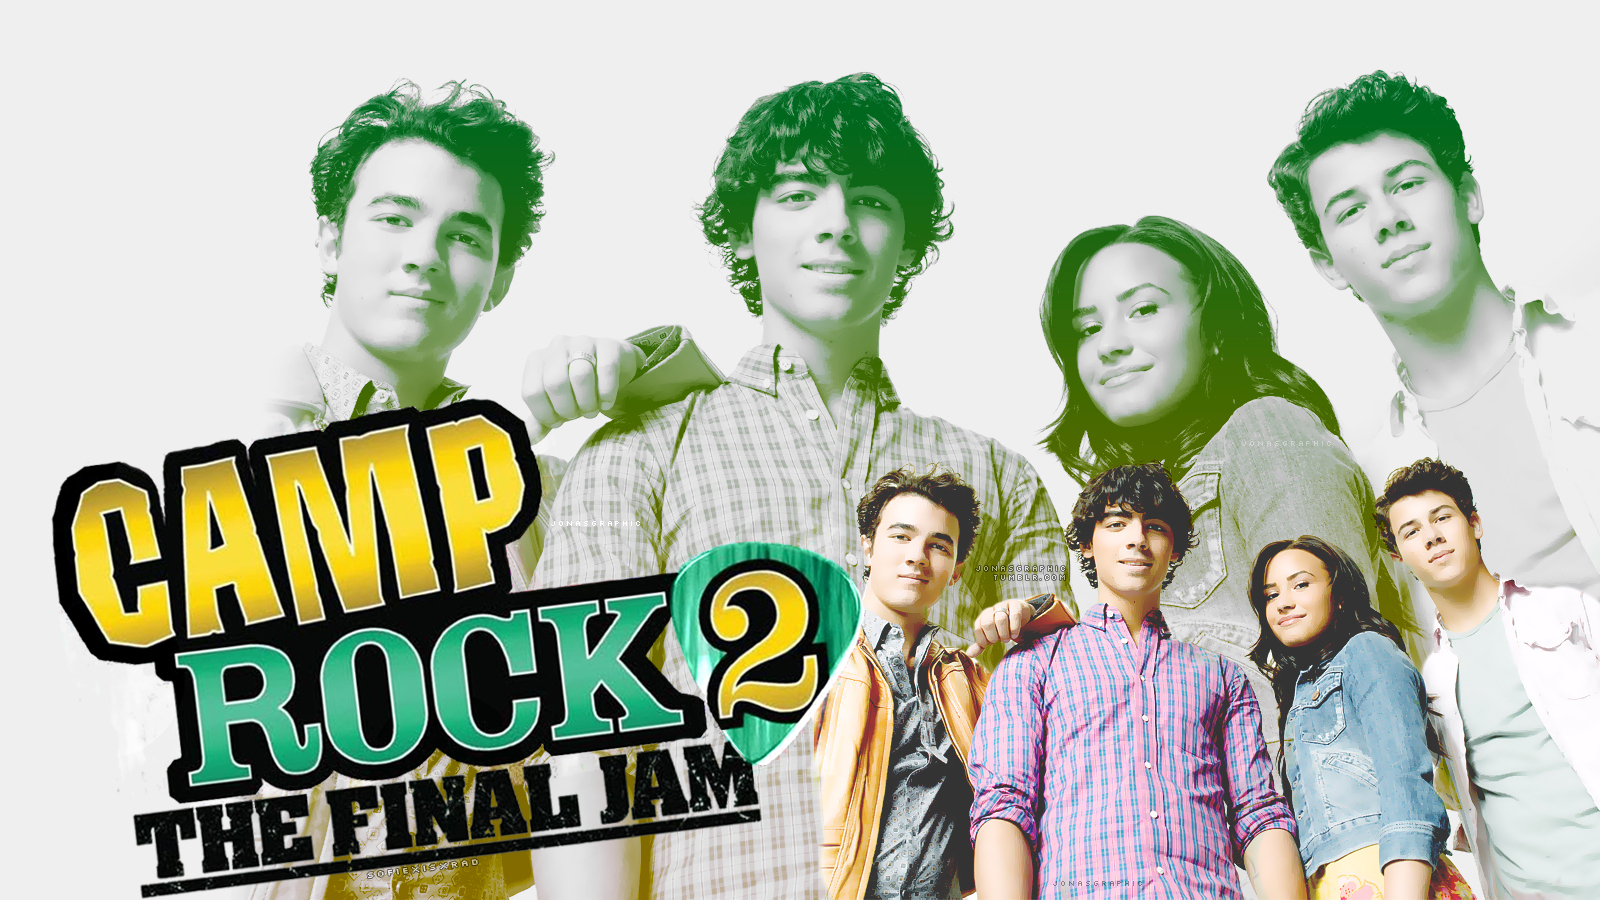 Camp Rock 2 images Camp Rock 2 HD wallpaper and background photos 1600x900